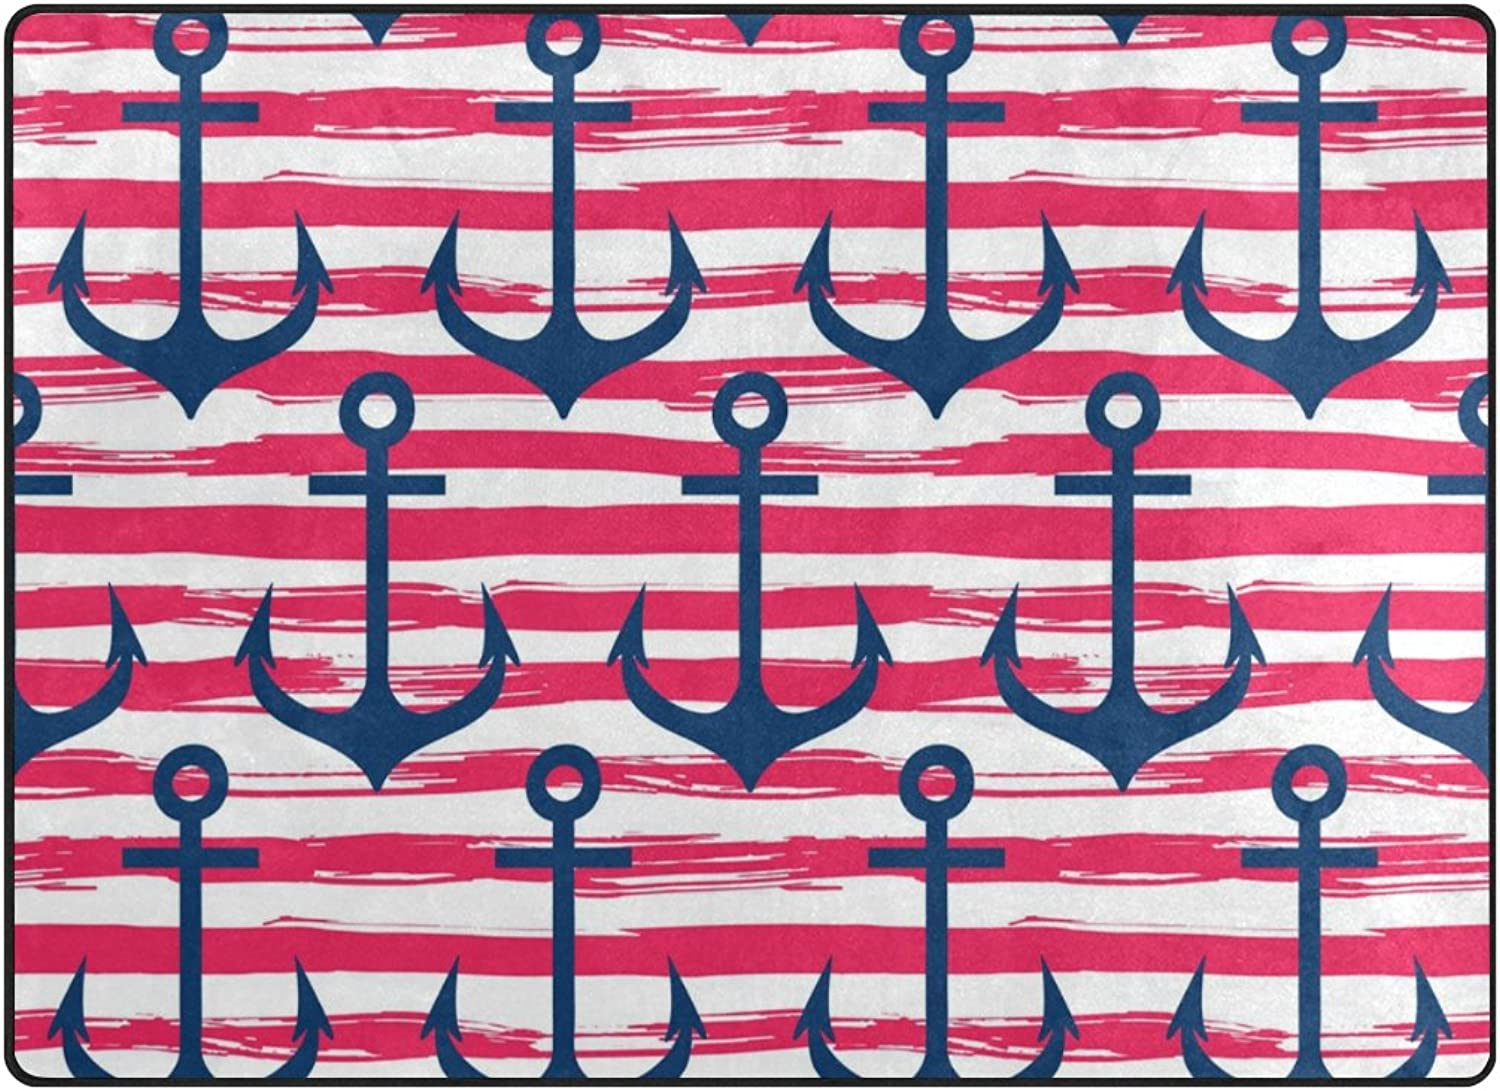 SUABO Anchor On Striped Background Area Rug Rugs Non-Slip Floor Mat Doormats Living Room Bedroom 80 x 58 inches